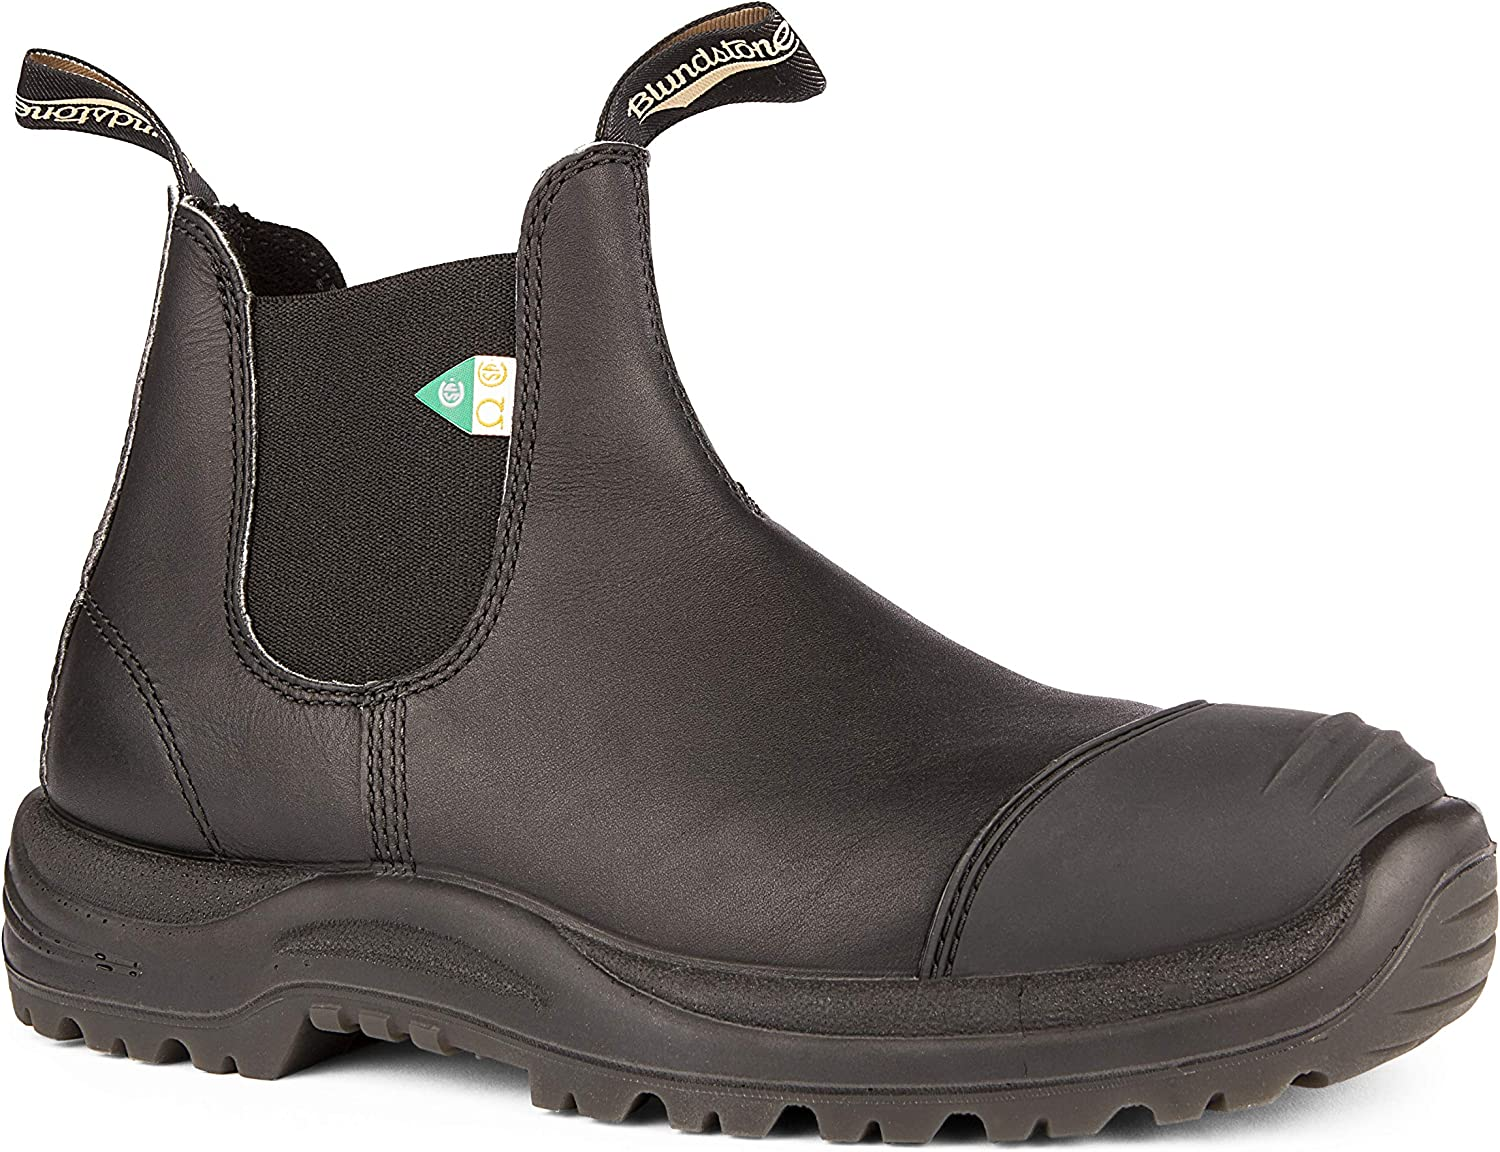 bluendstone CSA Steel Toe Greenpatch with Rubber Guard